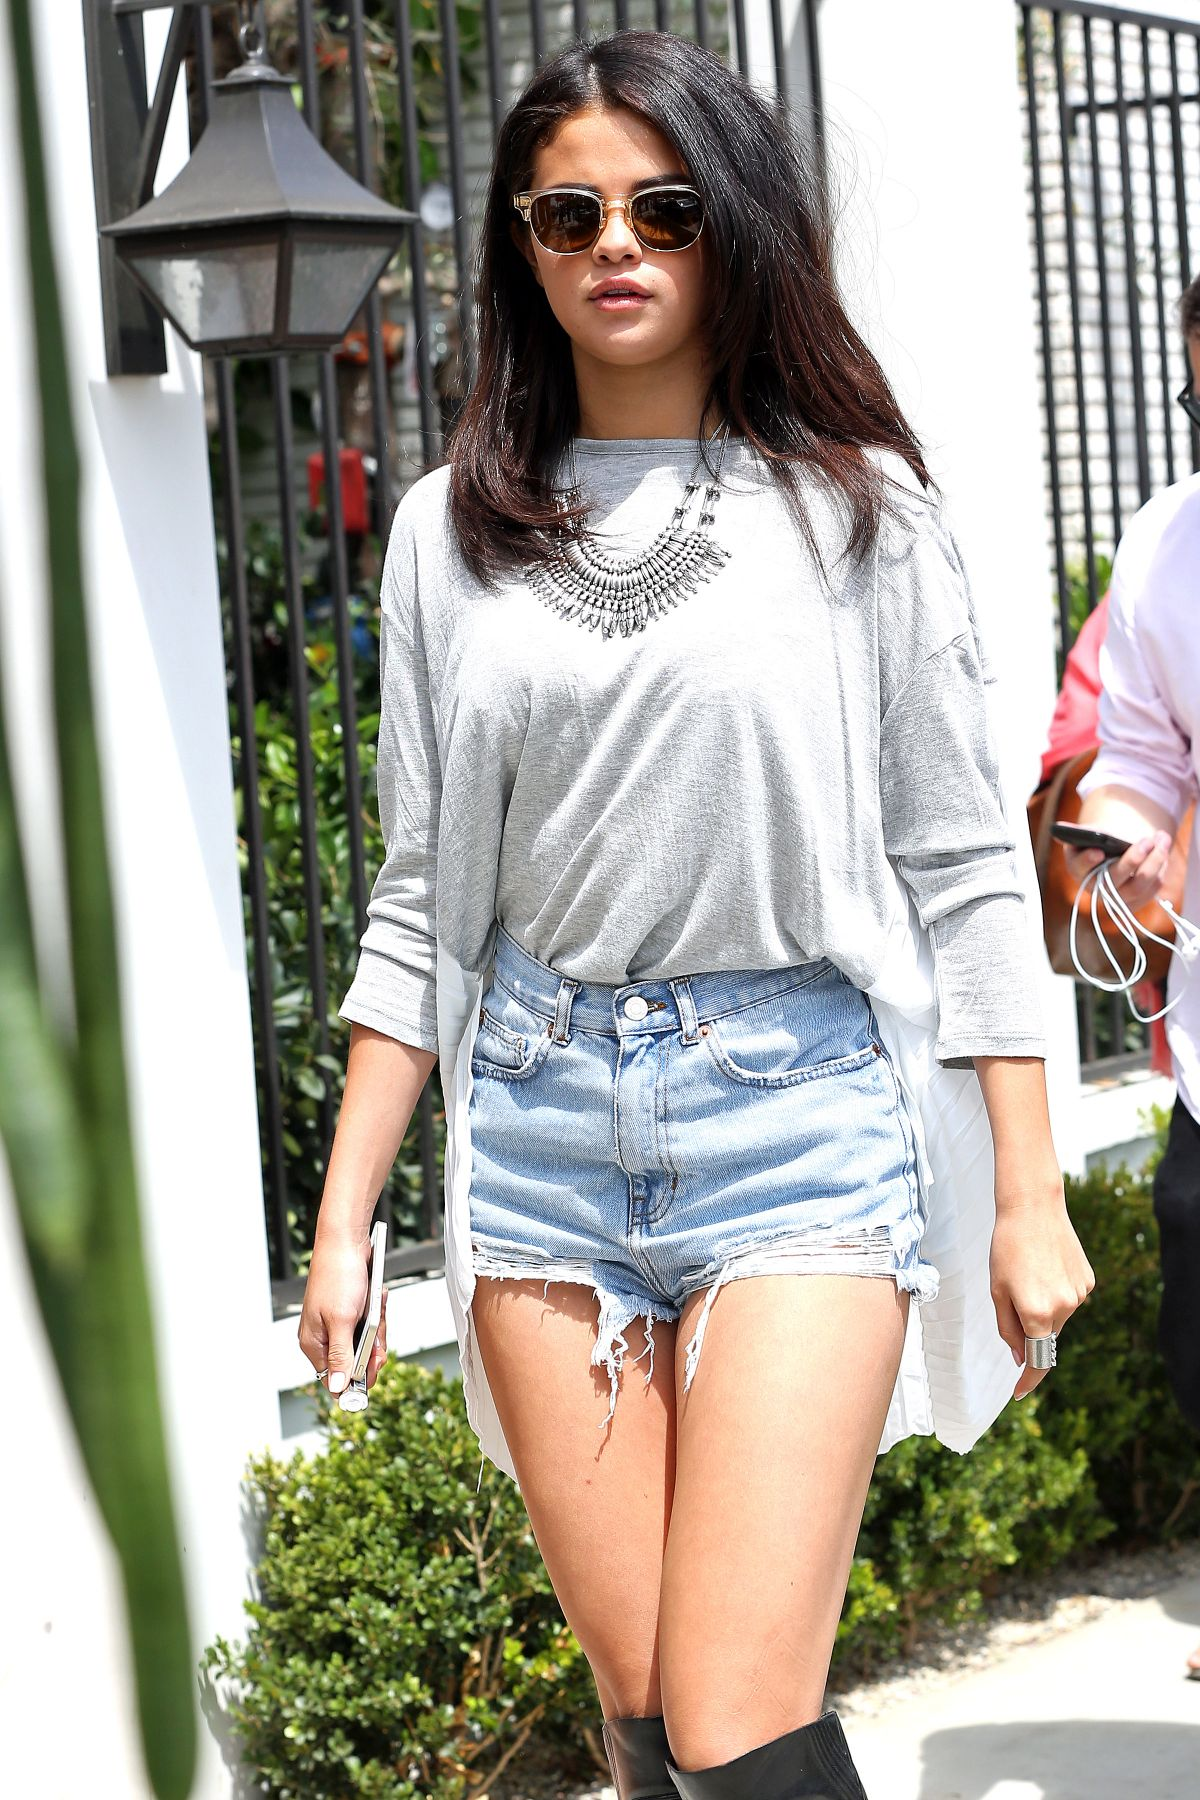 SELENA GOMEZ in at Gracias Madre in West Hollywood